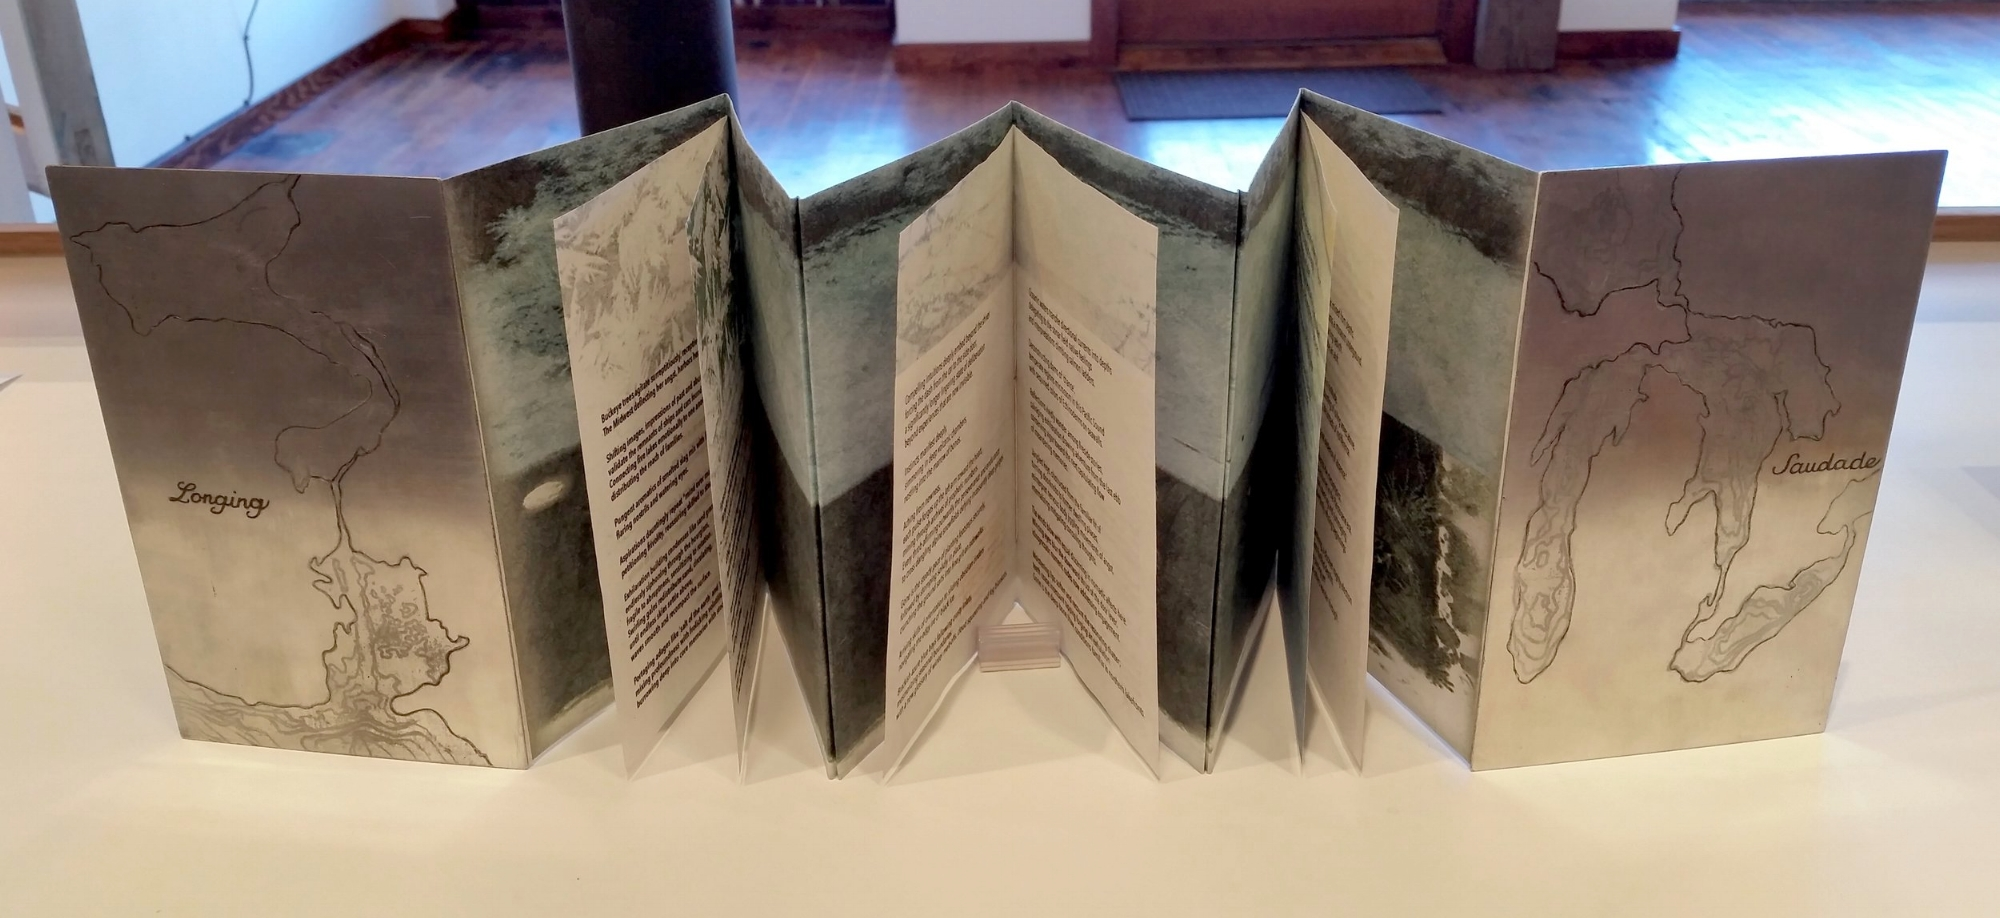 "Saudade , 4.5 x 7"" accordion book by Ann-Marie Cunningham"